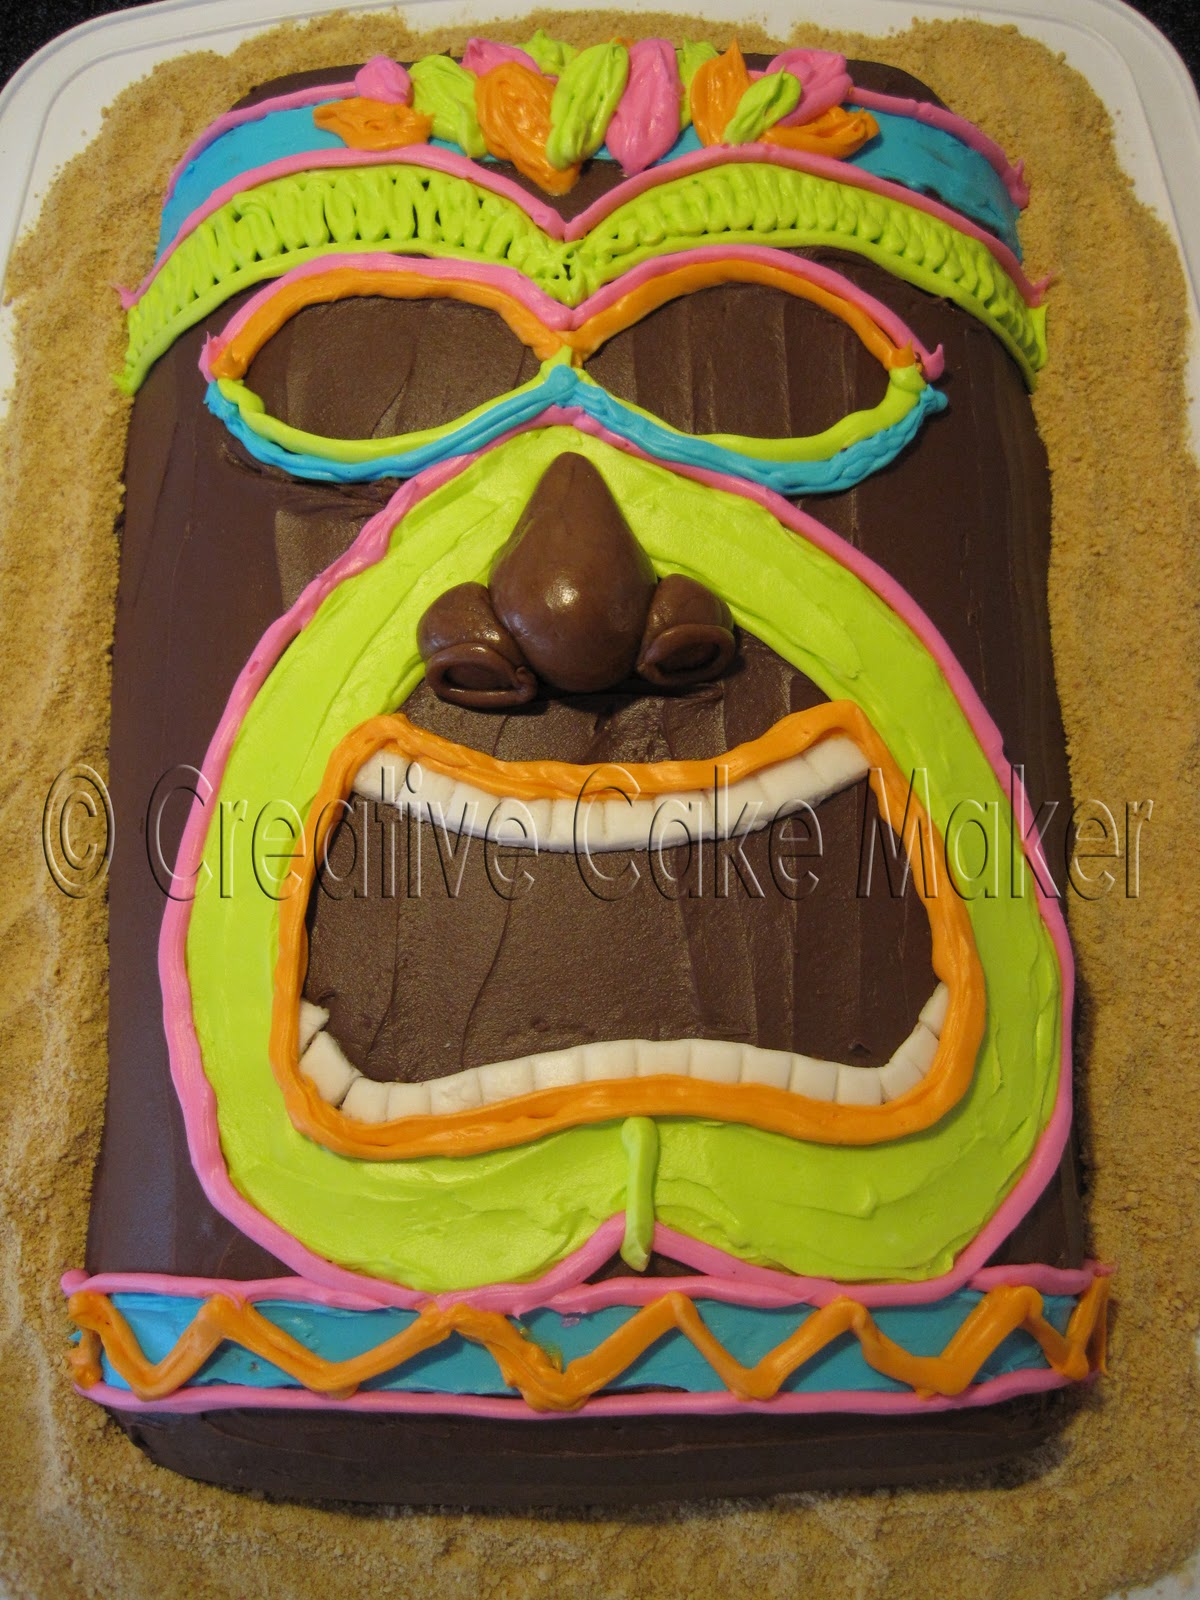 The Creative Cake Maker Tiki Man Cake